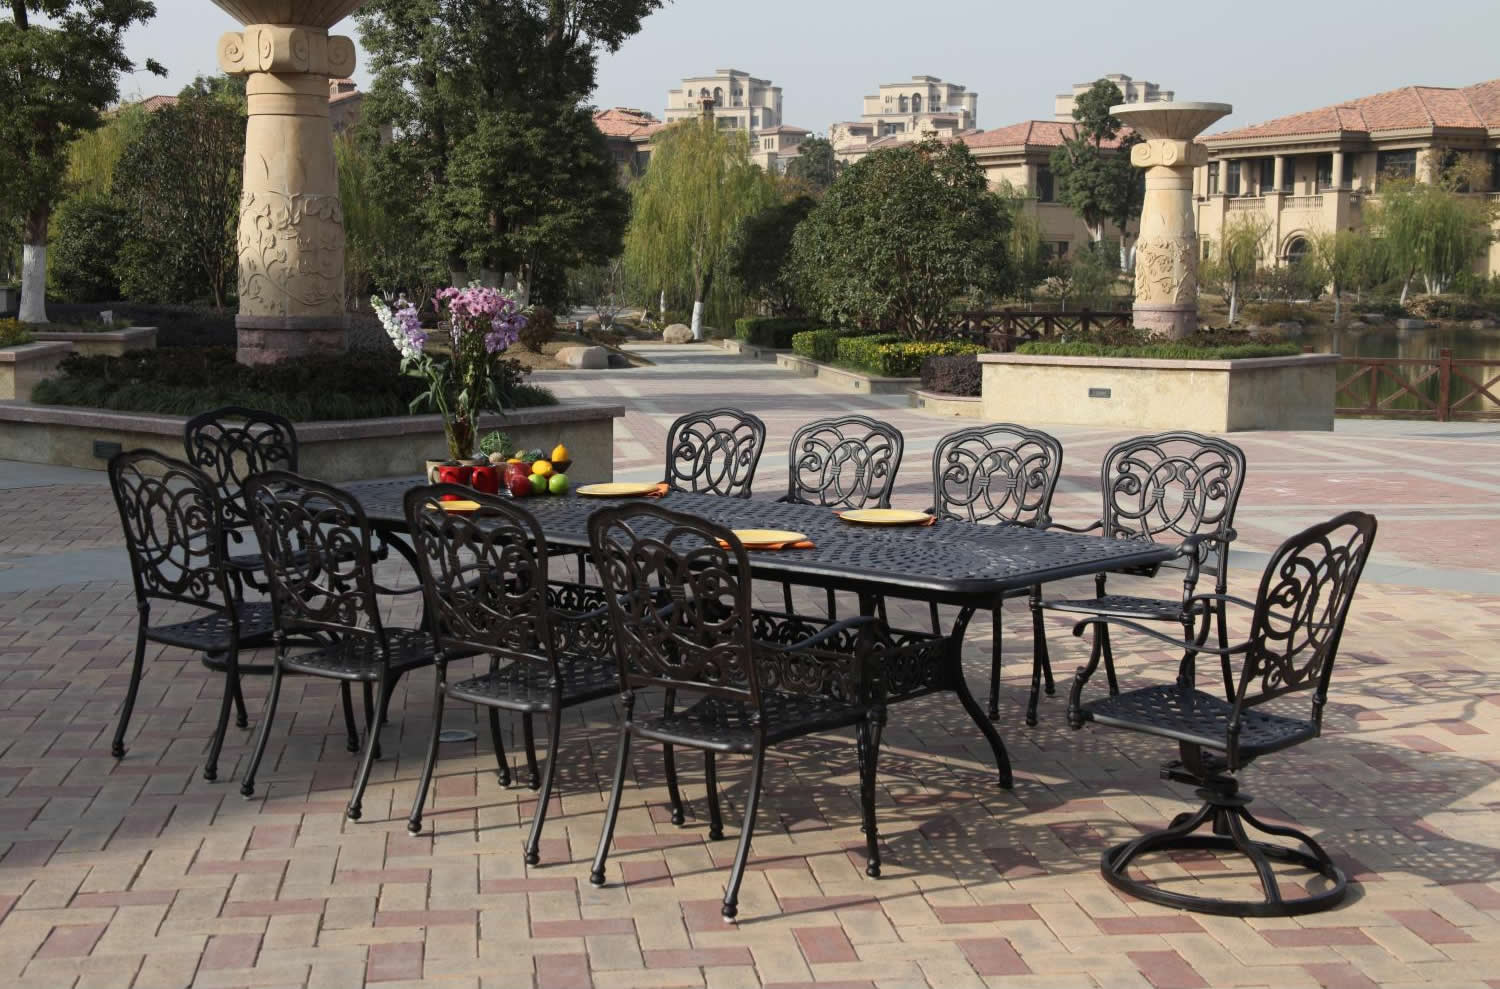 Outdoor Patio Furniture Dining Table Patio Furniture Dining Set Cast Aluminum 92 120 Extension Table 11pc Florence